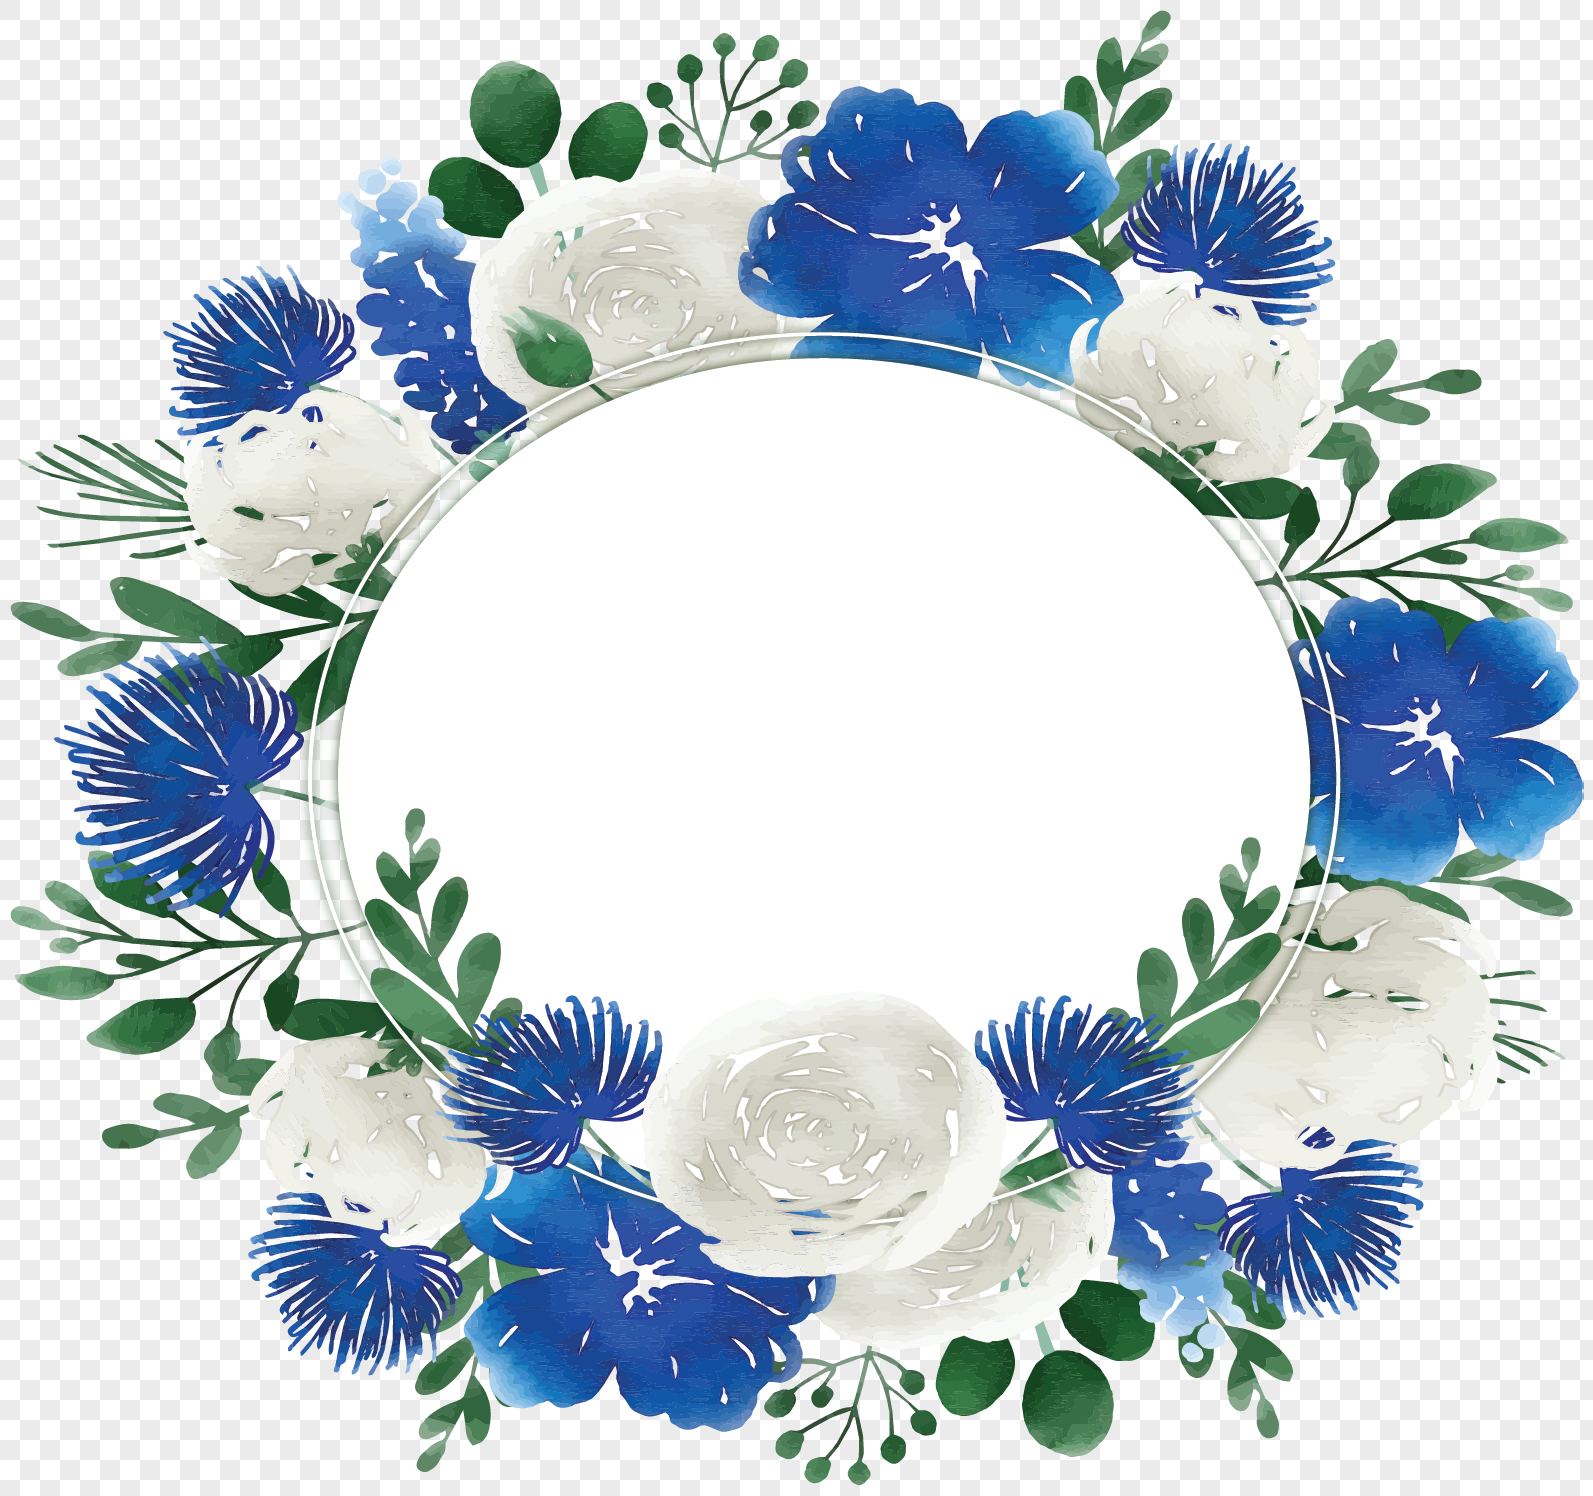 white blue watercolor flowers border png image picture free download